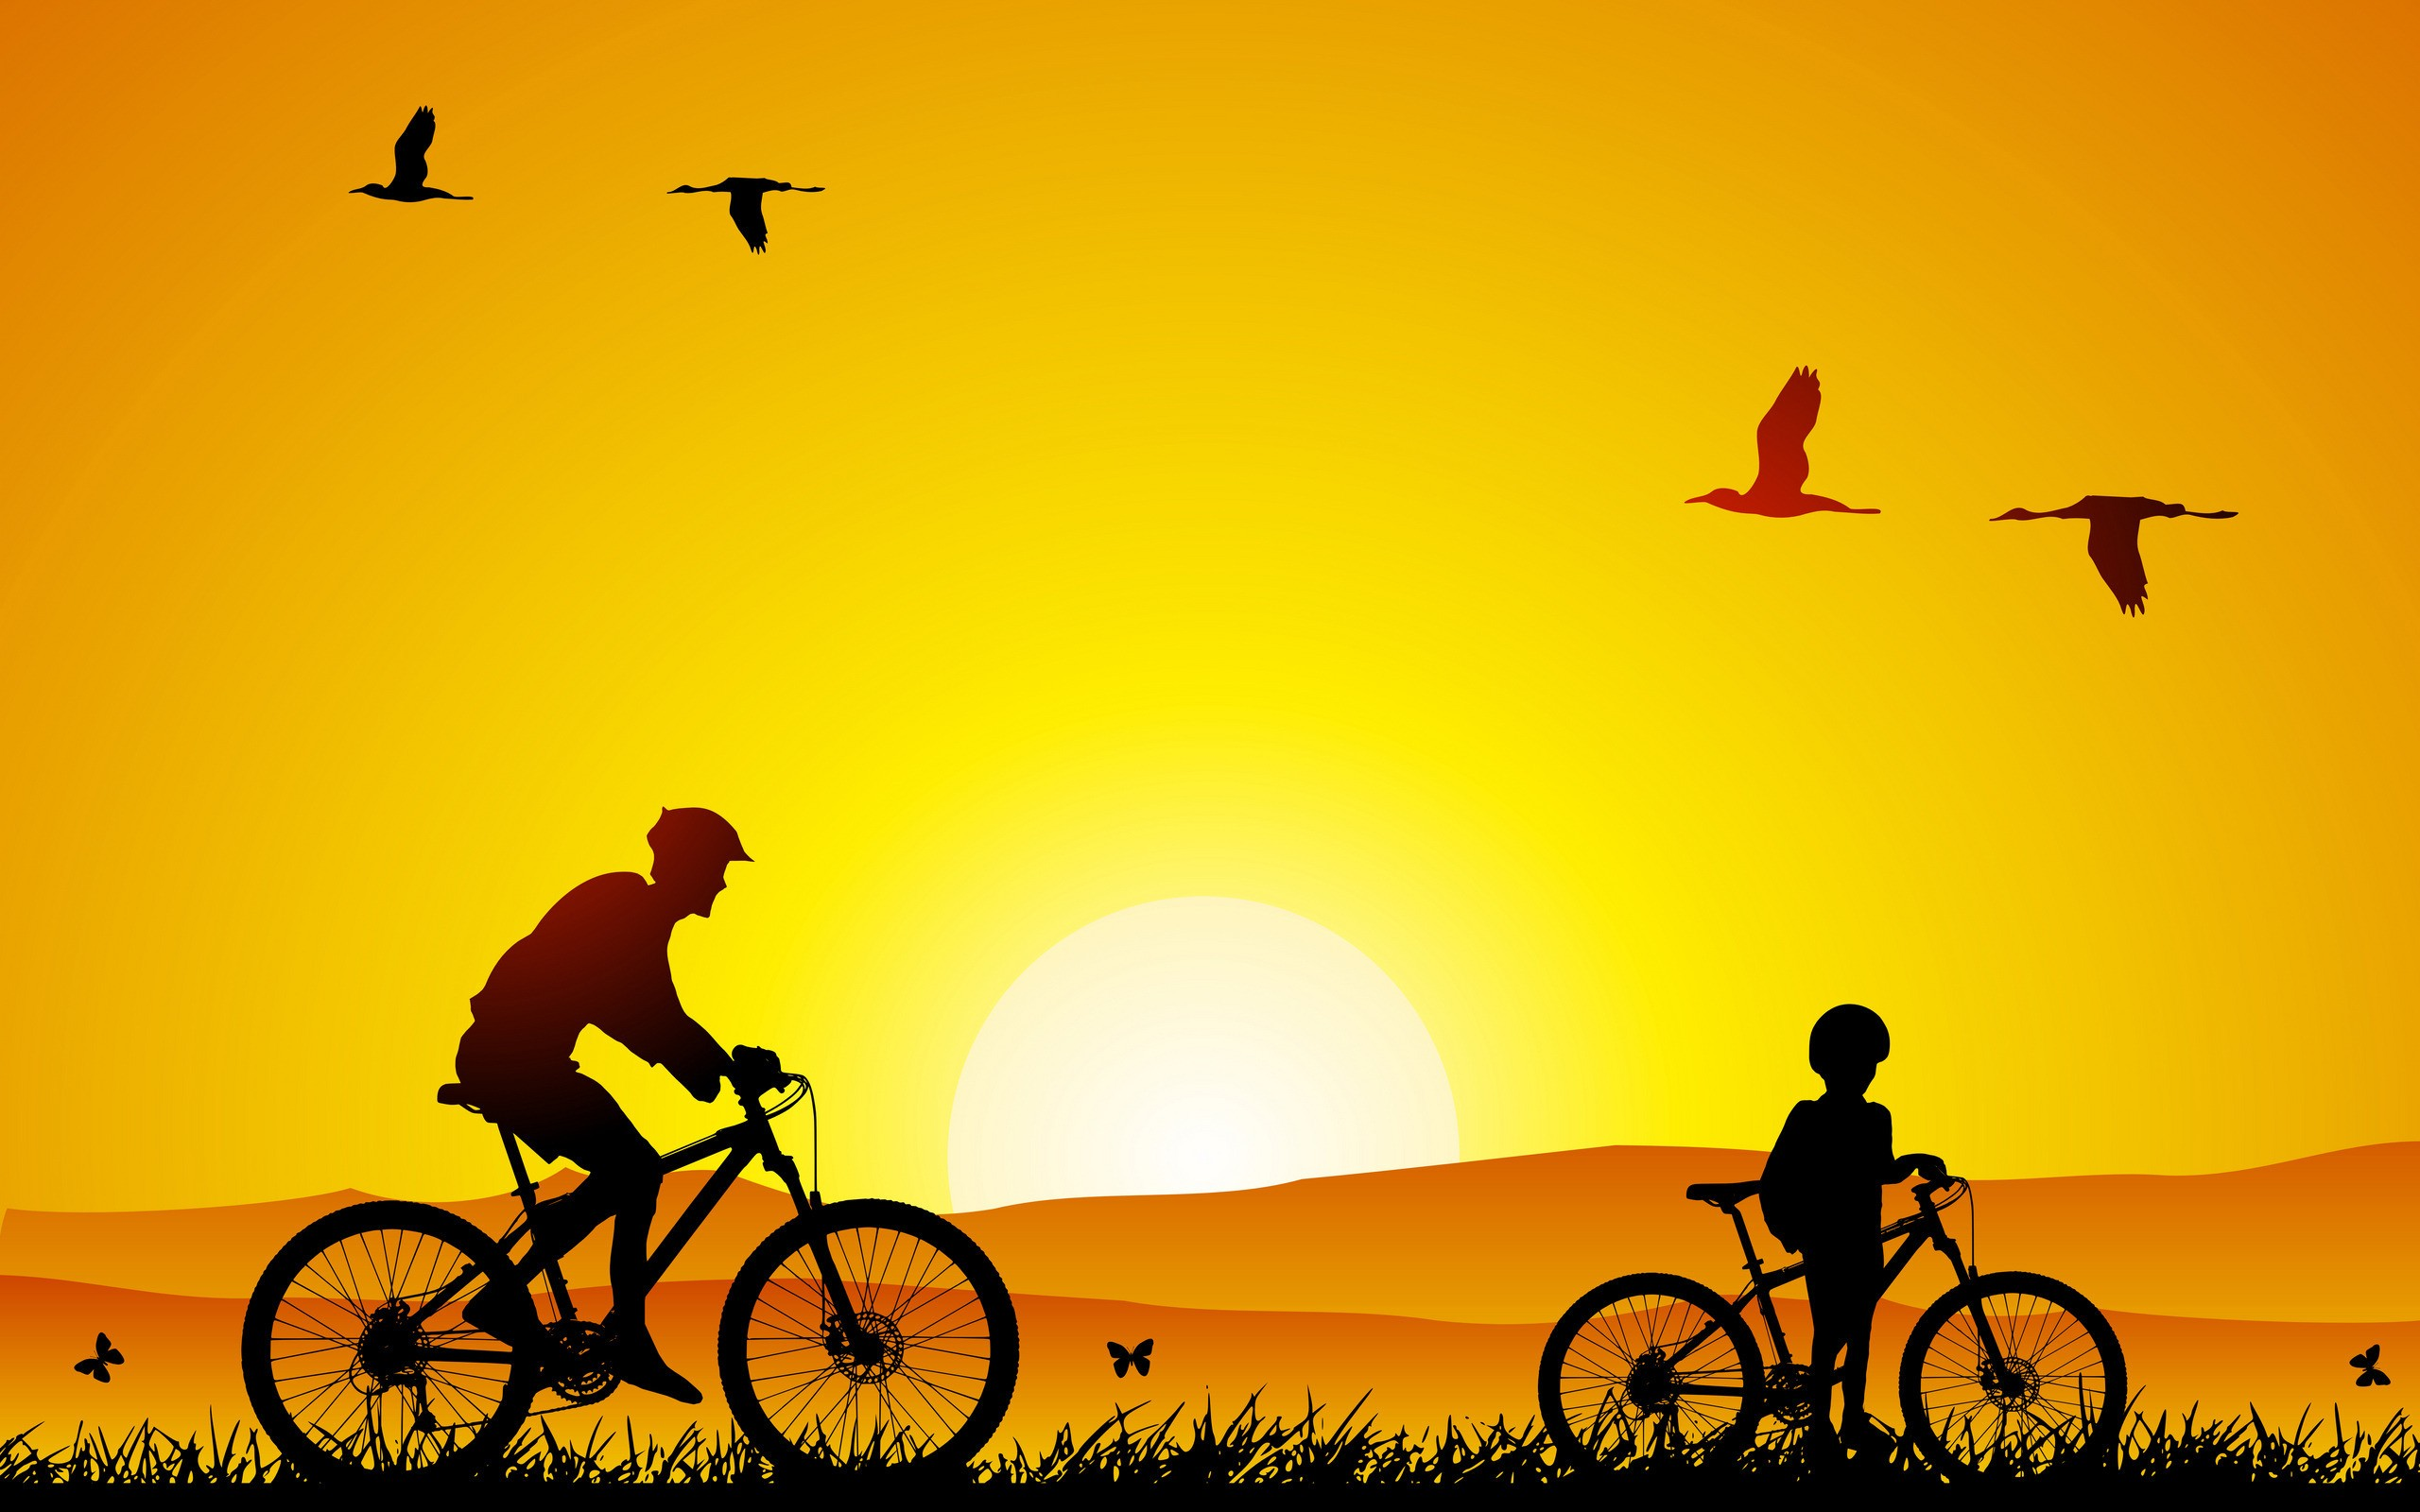 Download desktop wallpaper Silhouettes of cyclists and flying birds ...